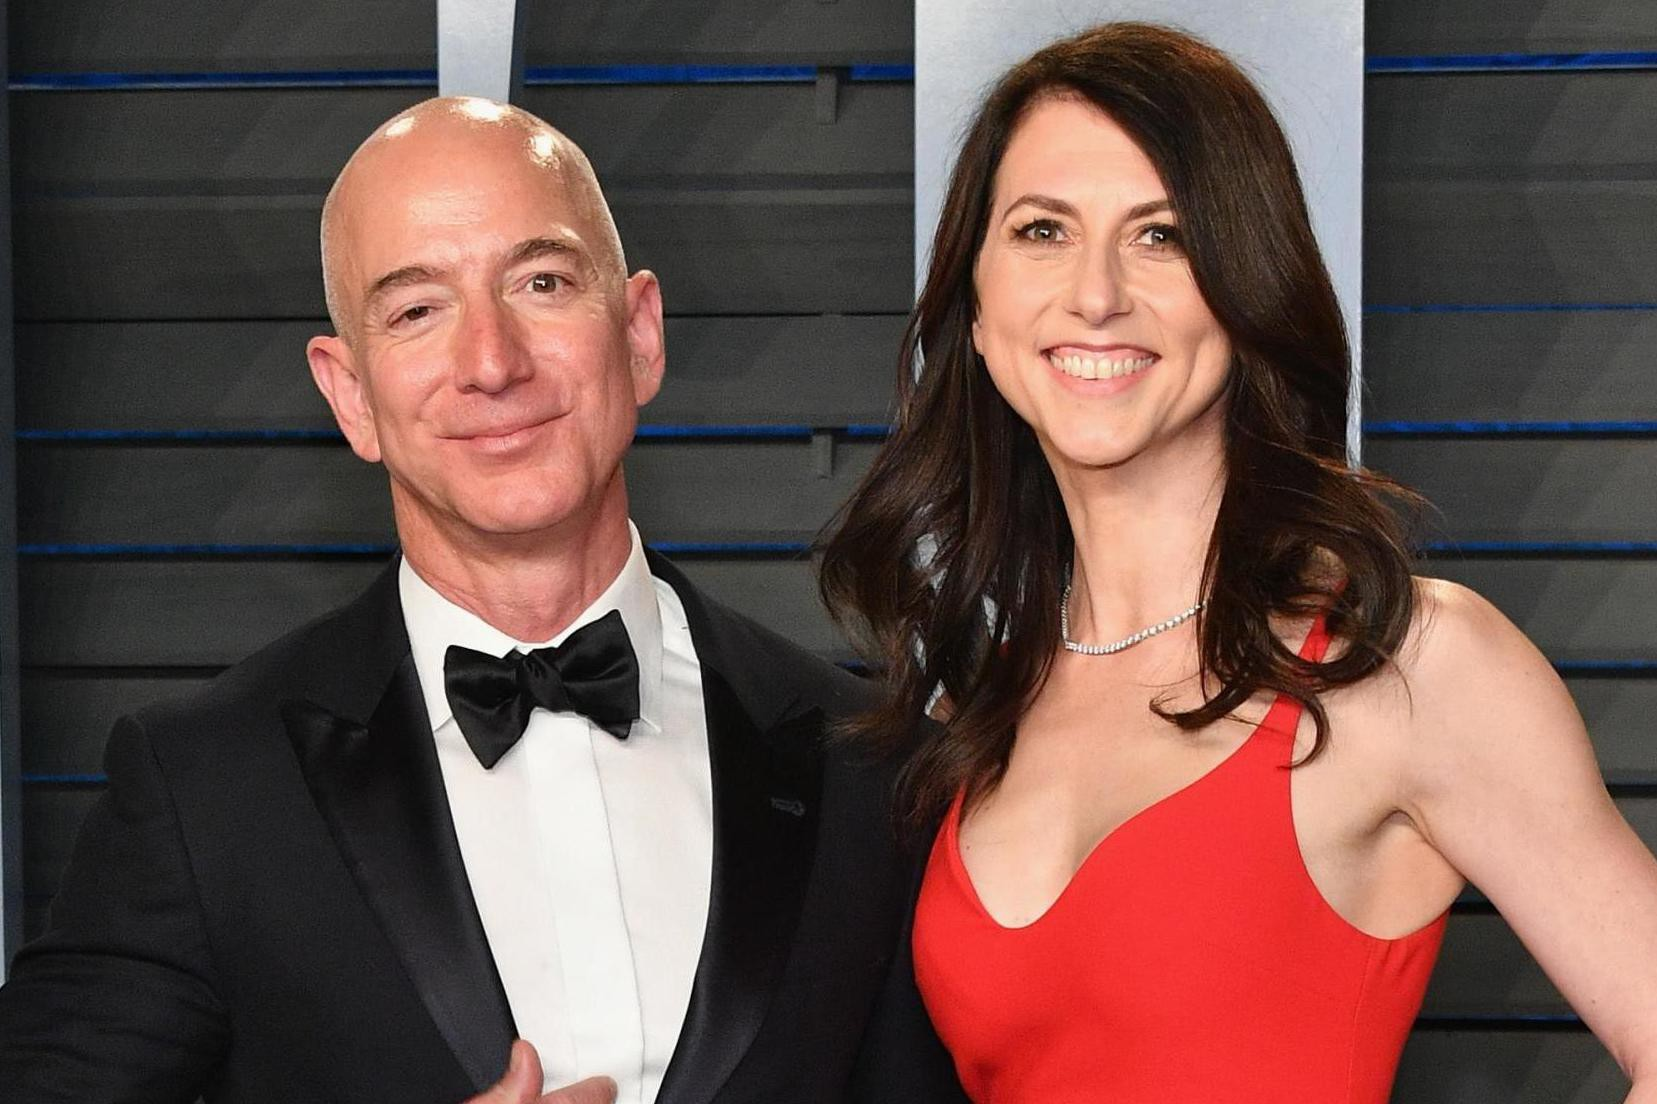 jeffbezos-mackenziebezos-amazon-1-14-19-012